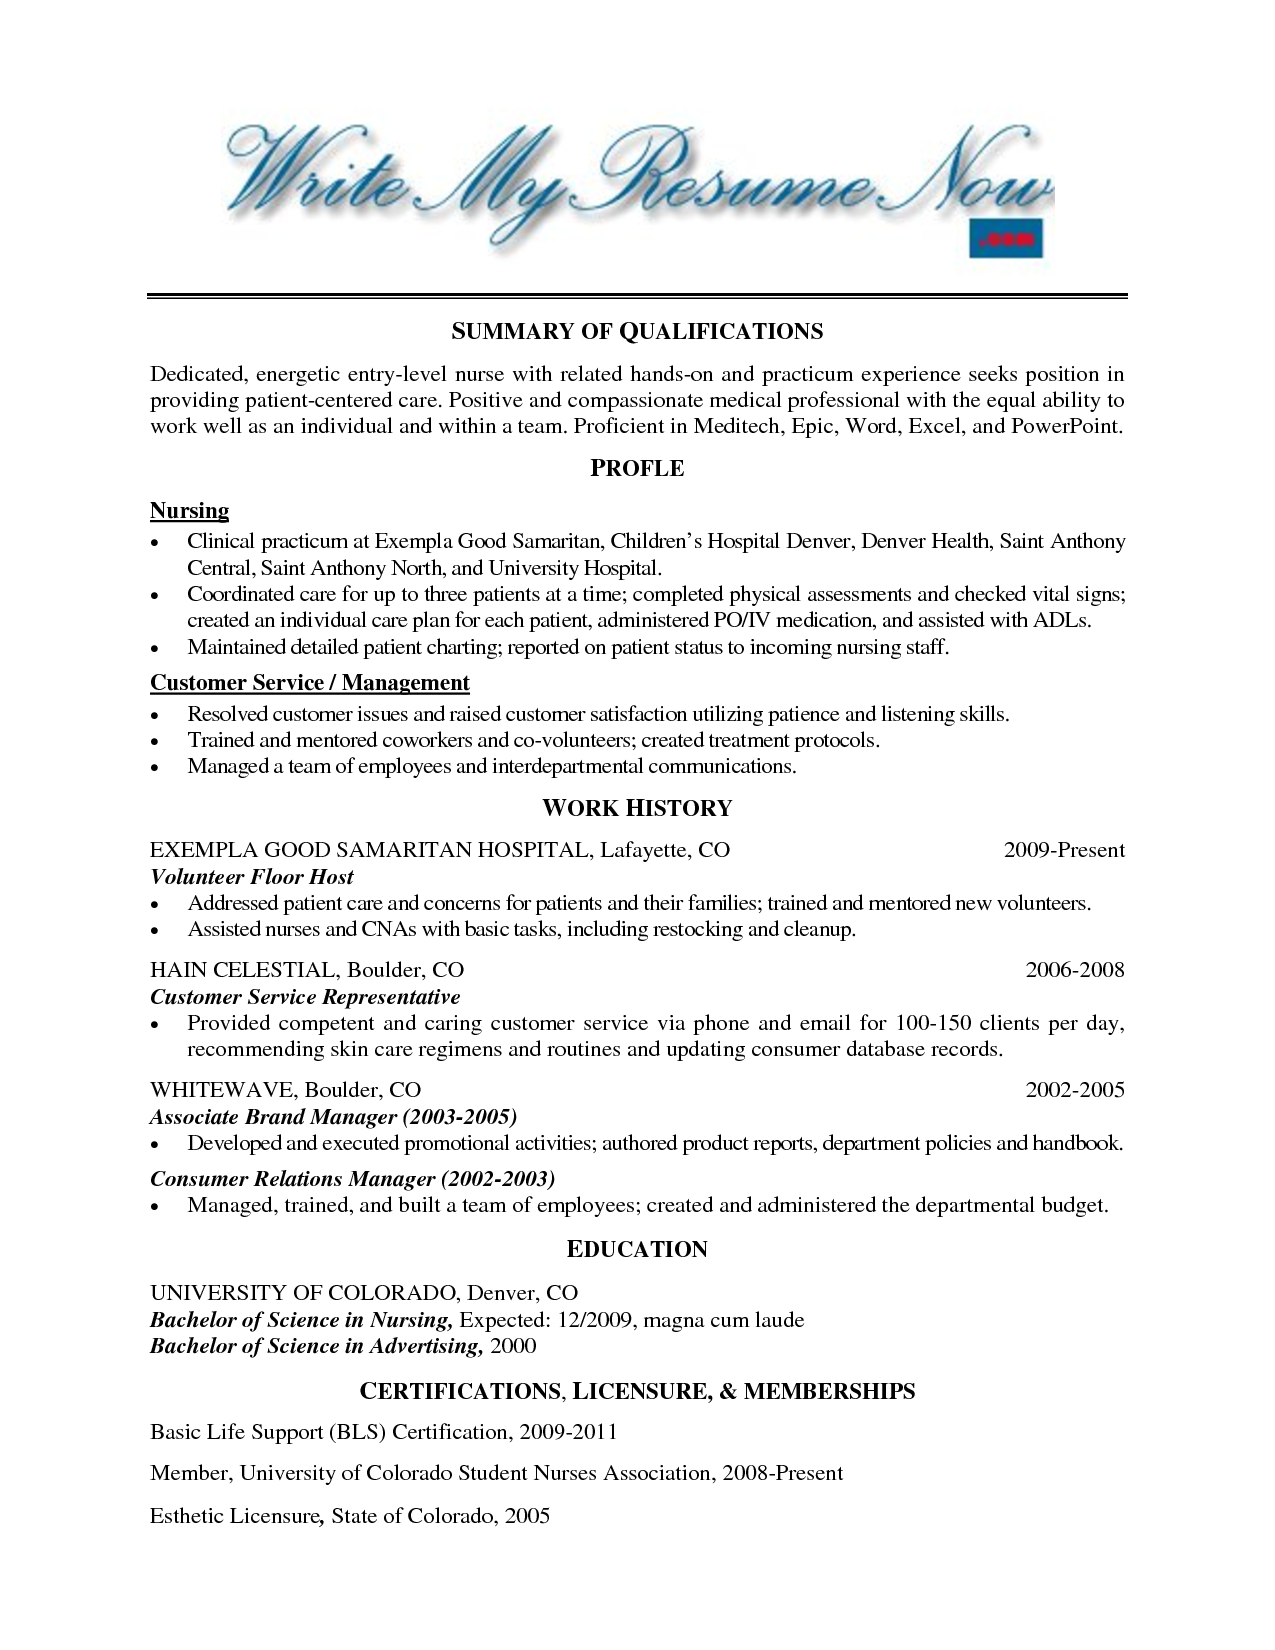 Hospital Volunteer Resume Example resumecareerinfo – Volunteer Resume Template